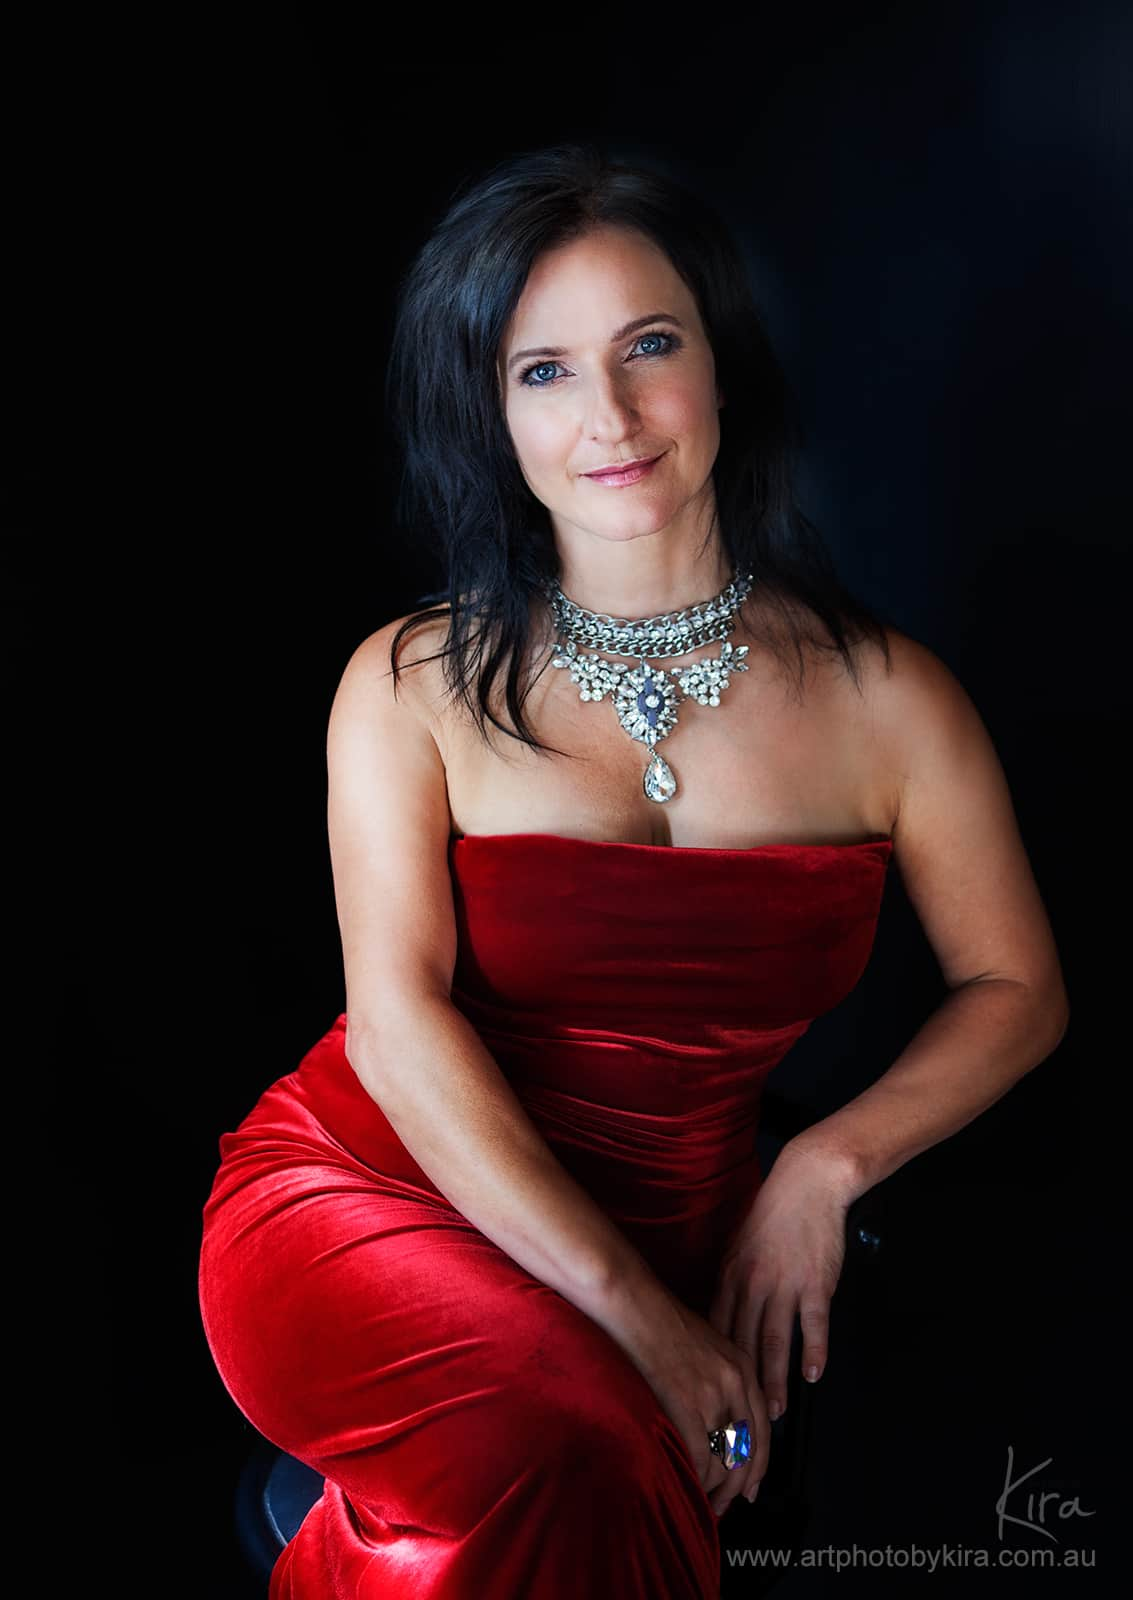 glamour shot of the woman in the red dress